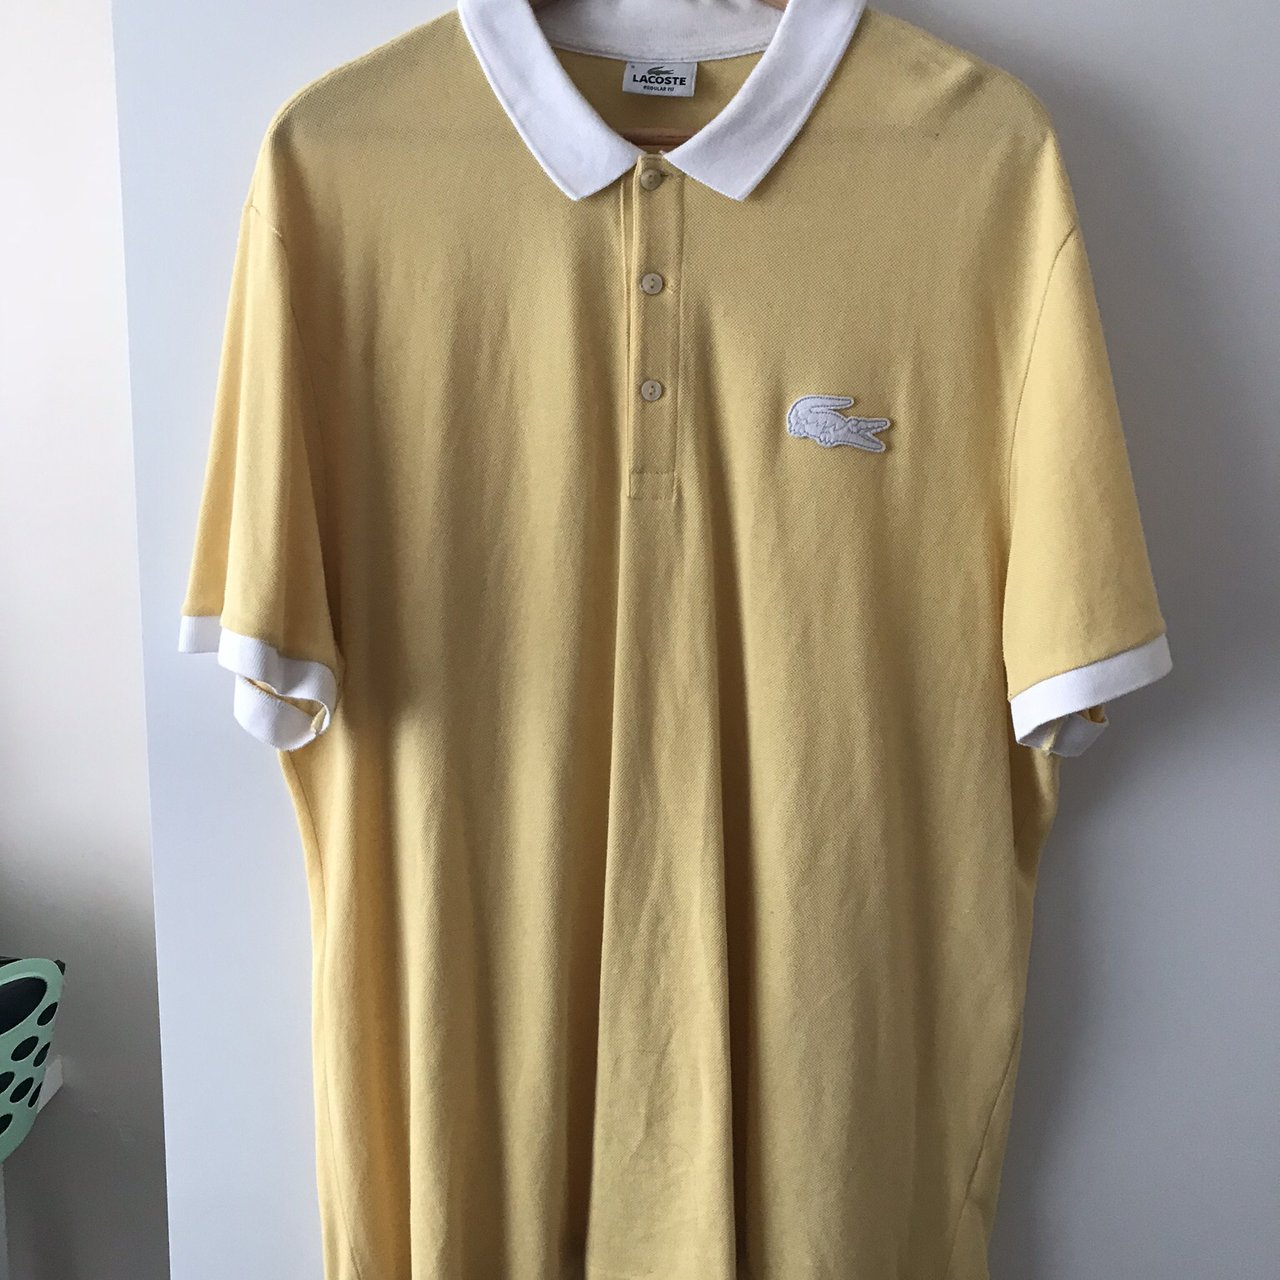 bb7d4436 Lacoste Big Logo Polo Size 8 Xxl Regular Fit Depop